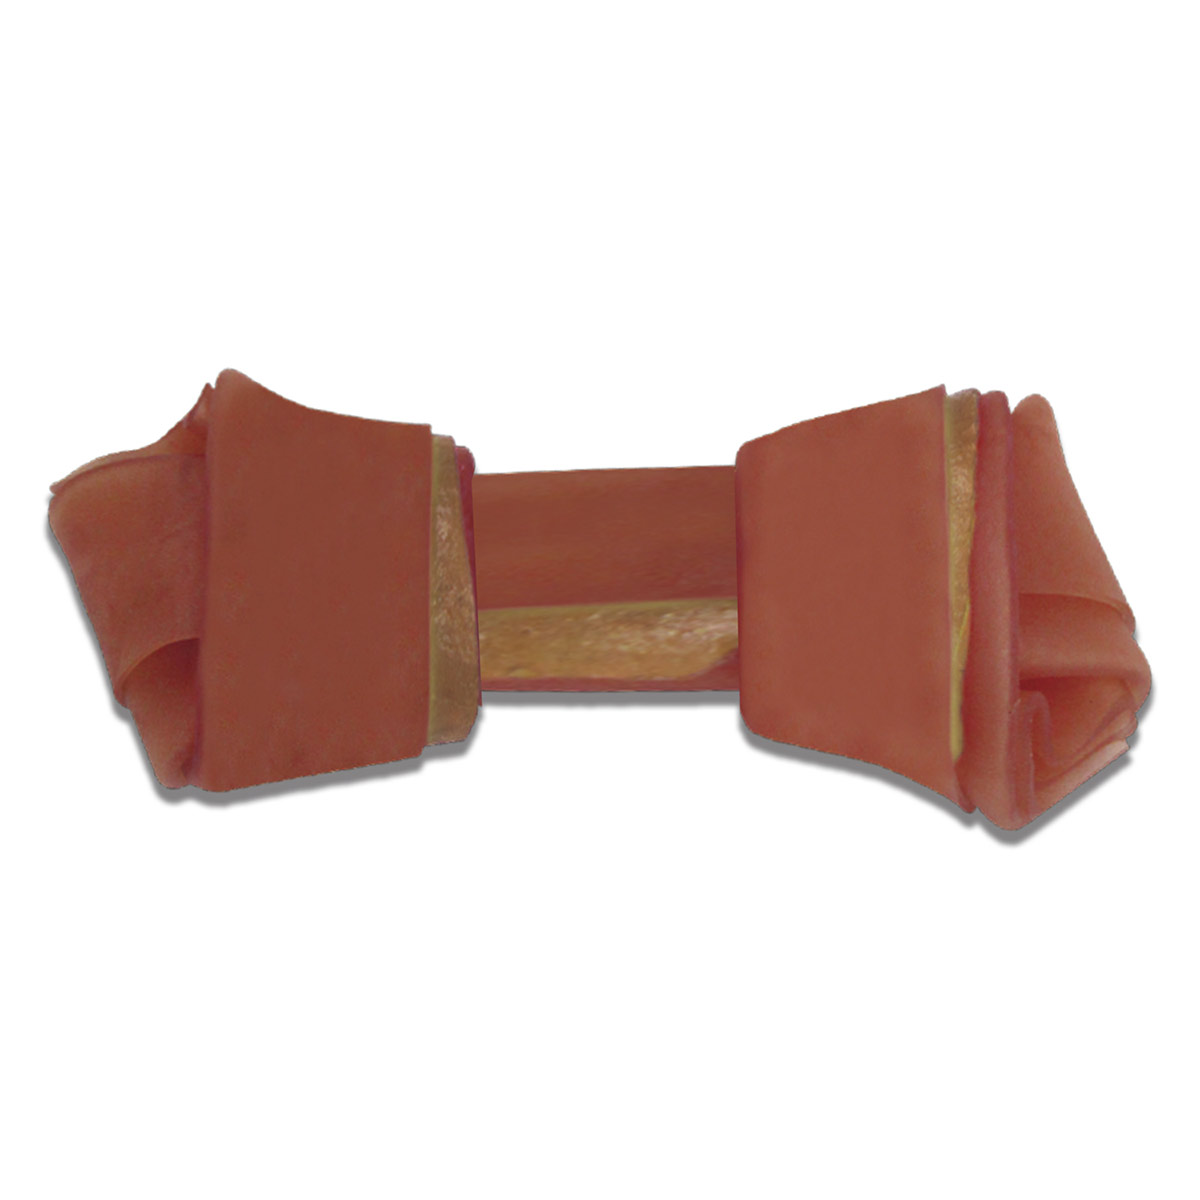 SmartBones Beef Large Chews for Dogs - No Rawhide